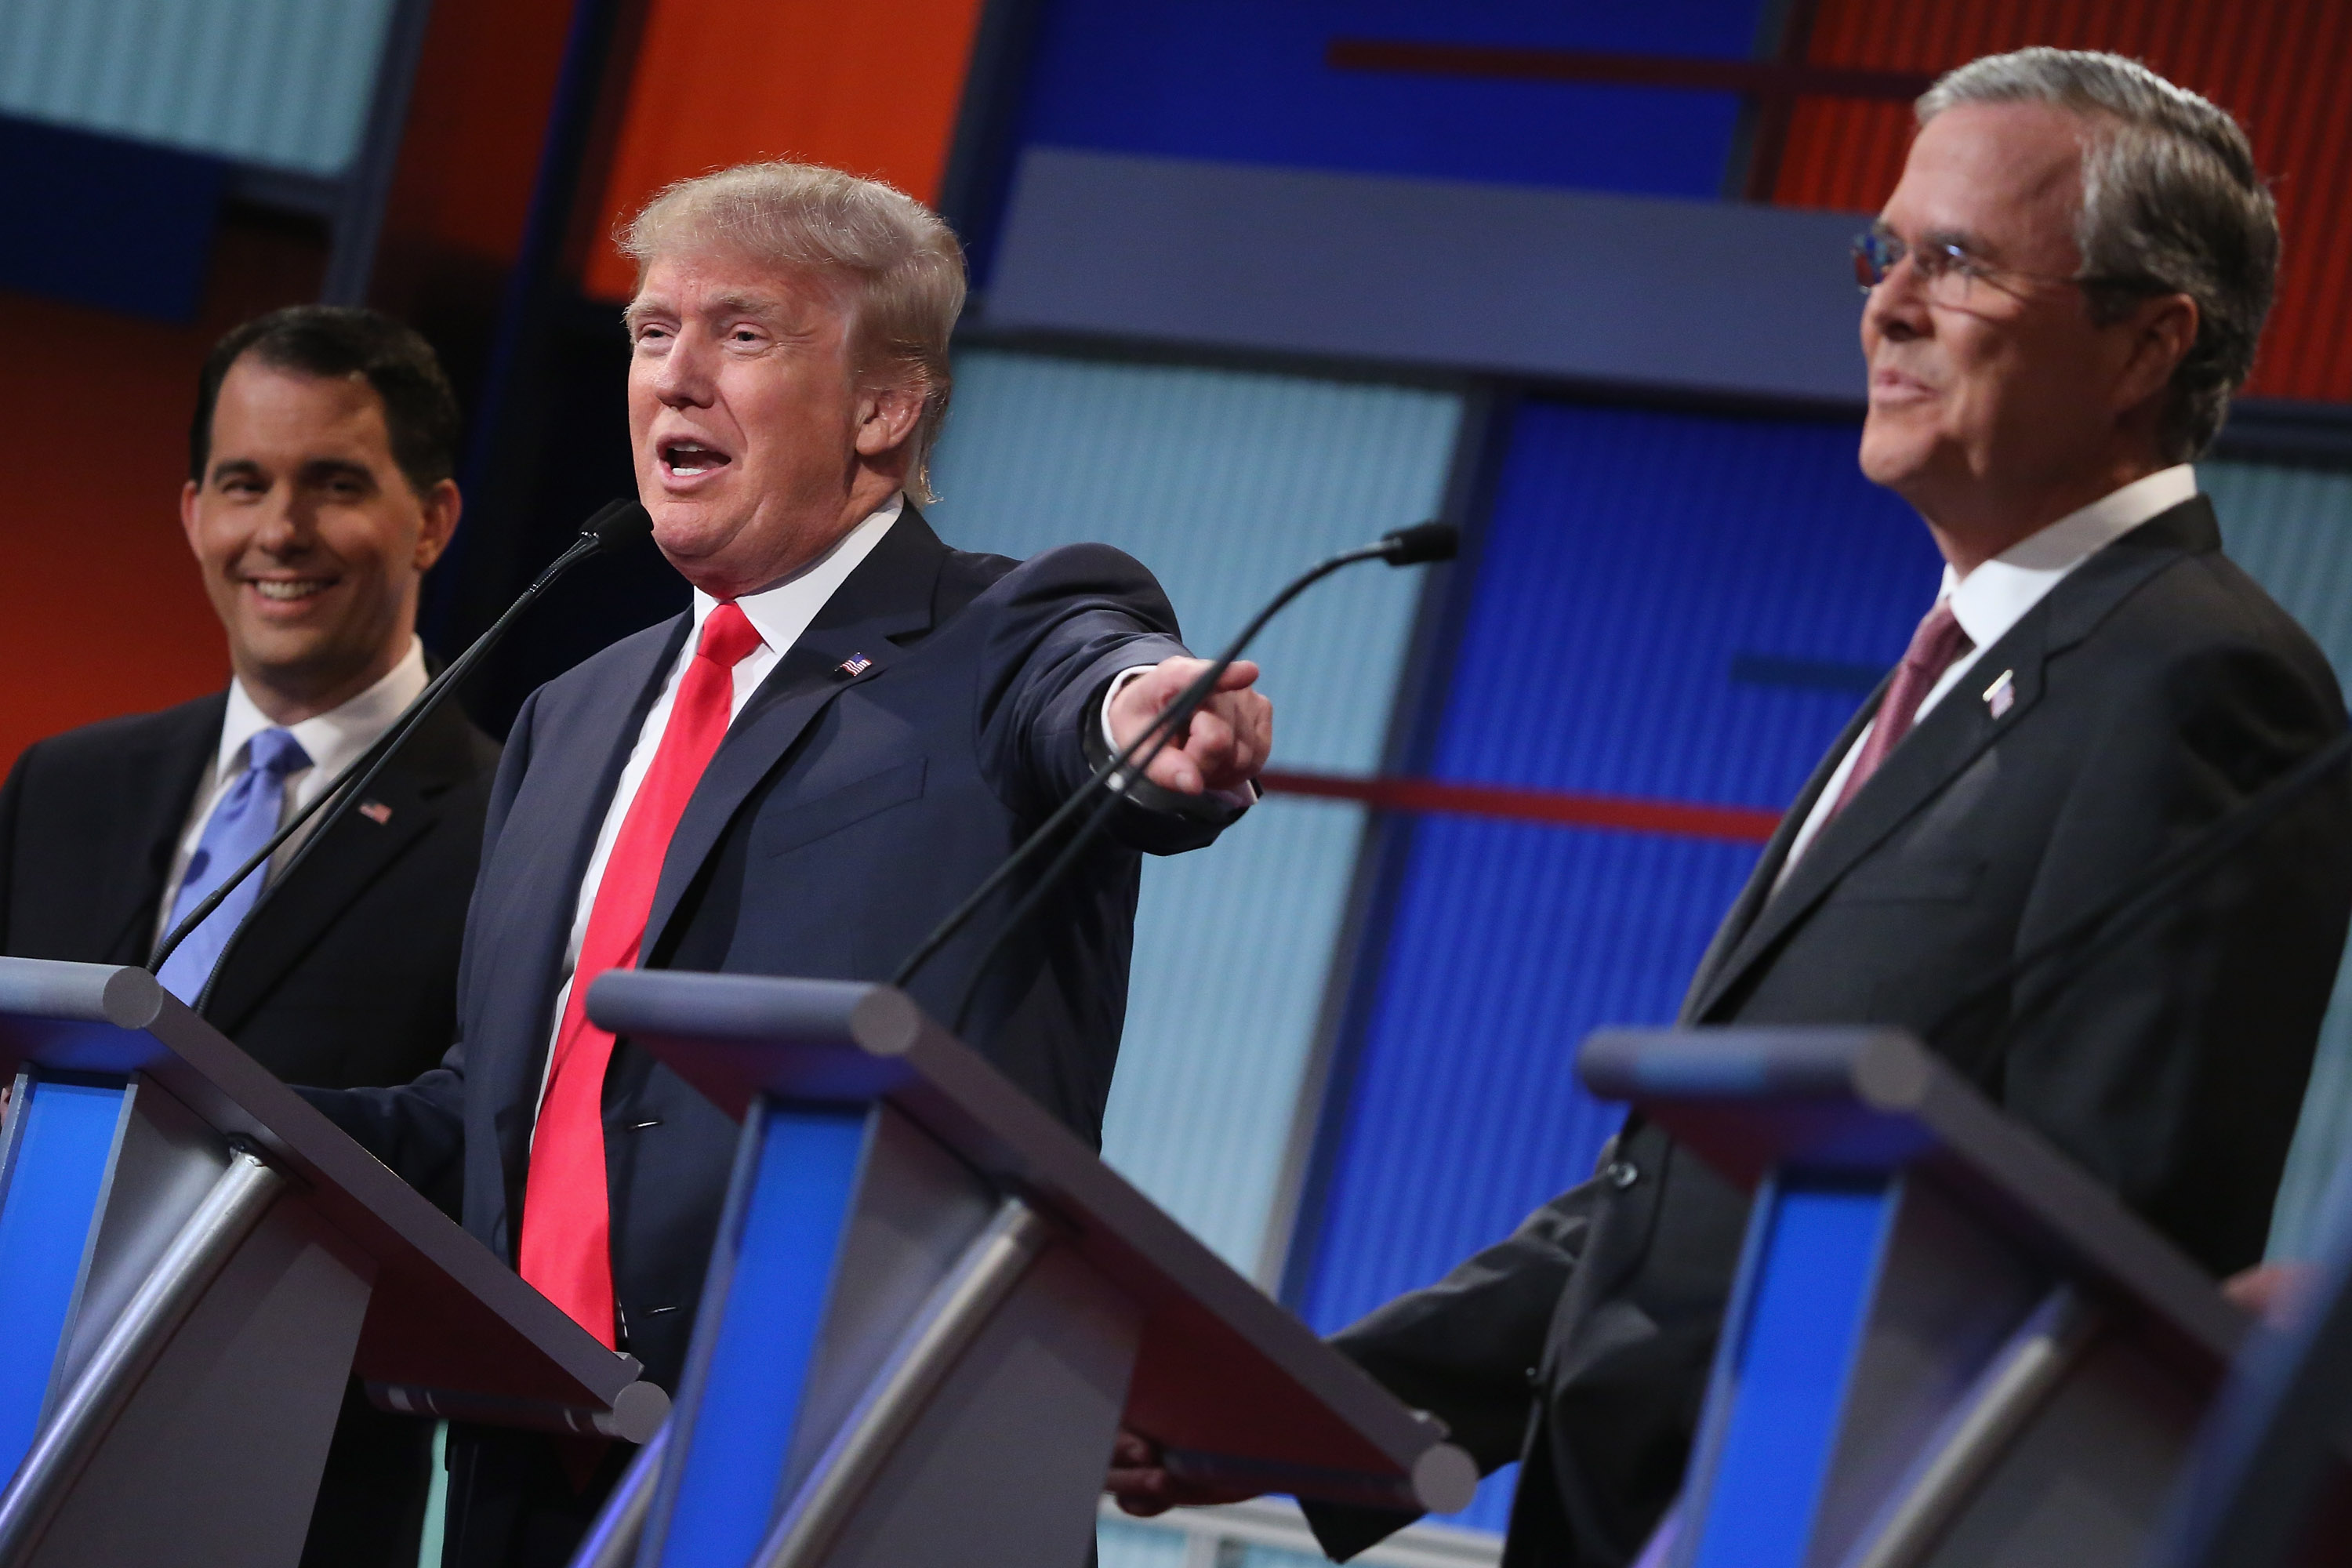 Wisconsin Gov. Scott Walker, Donald Trump, and Jeb Bush participate in the first prime-time presidential debate hosted by Fox News and Facebook at the Quicken Loans Arena August 6, 2015, in Cleveland, Ohio.